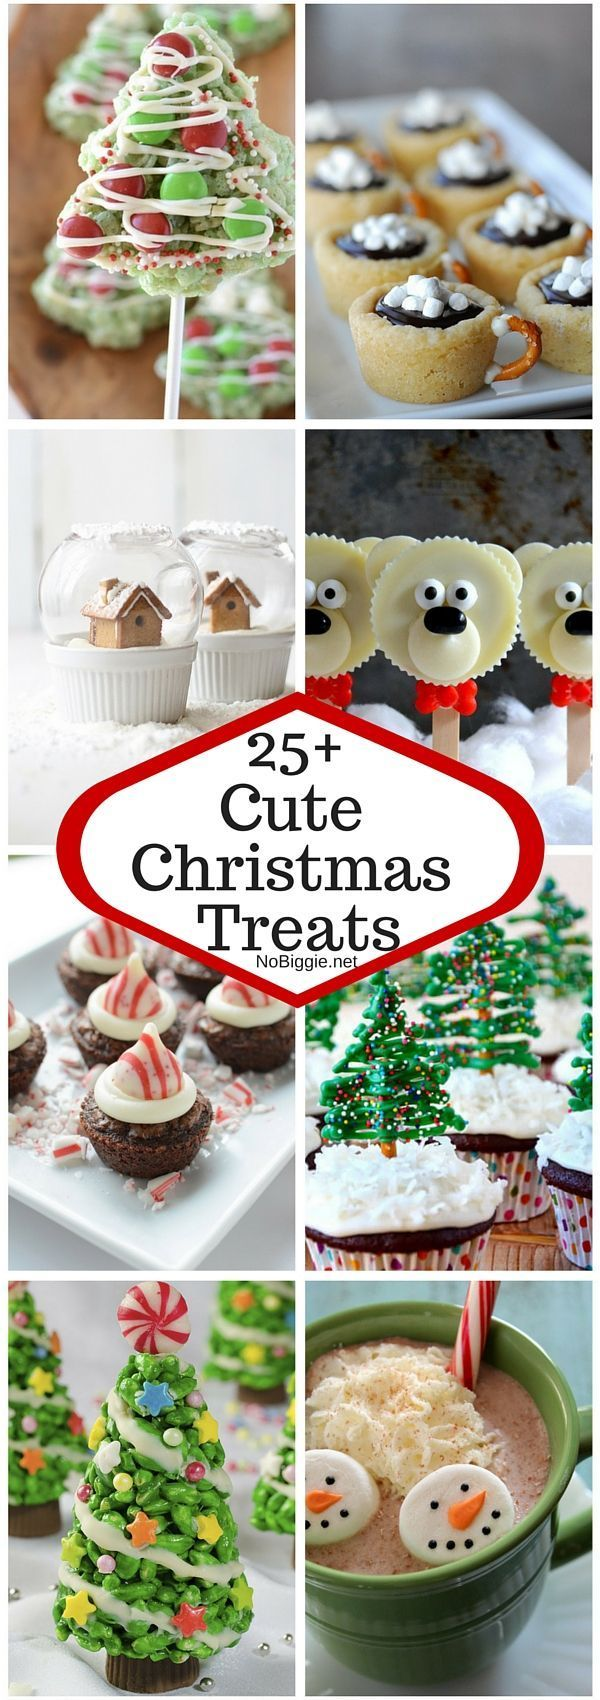 25+ Cute Christmas Treats